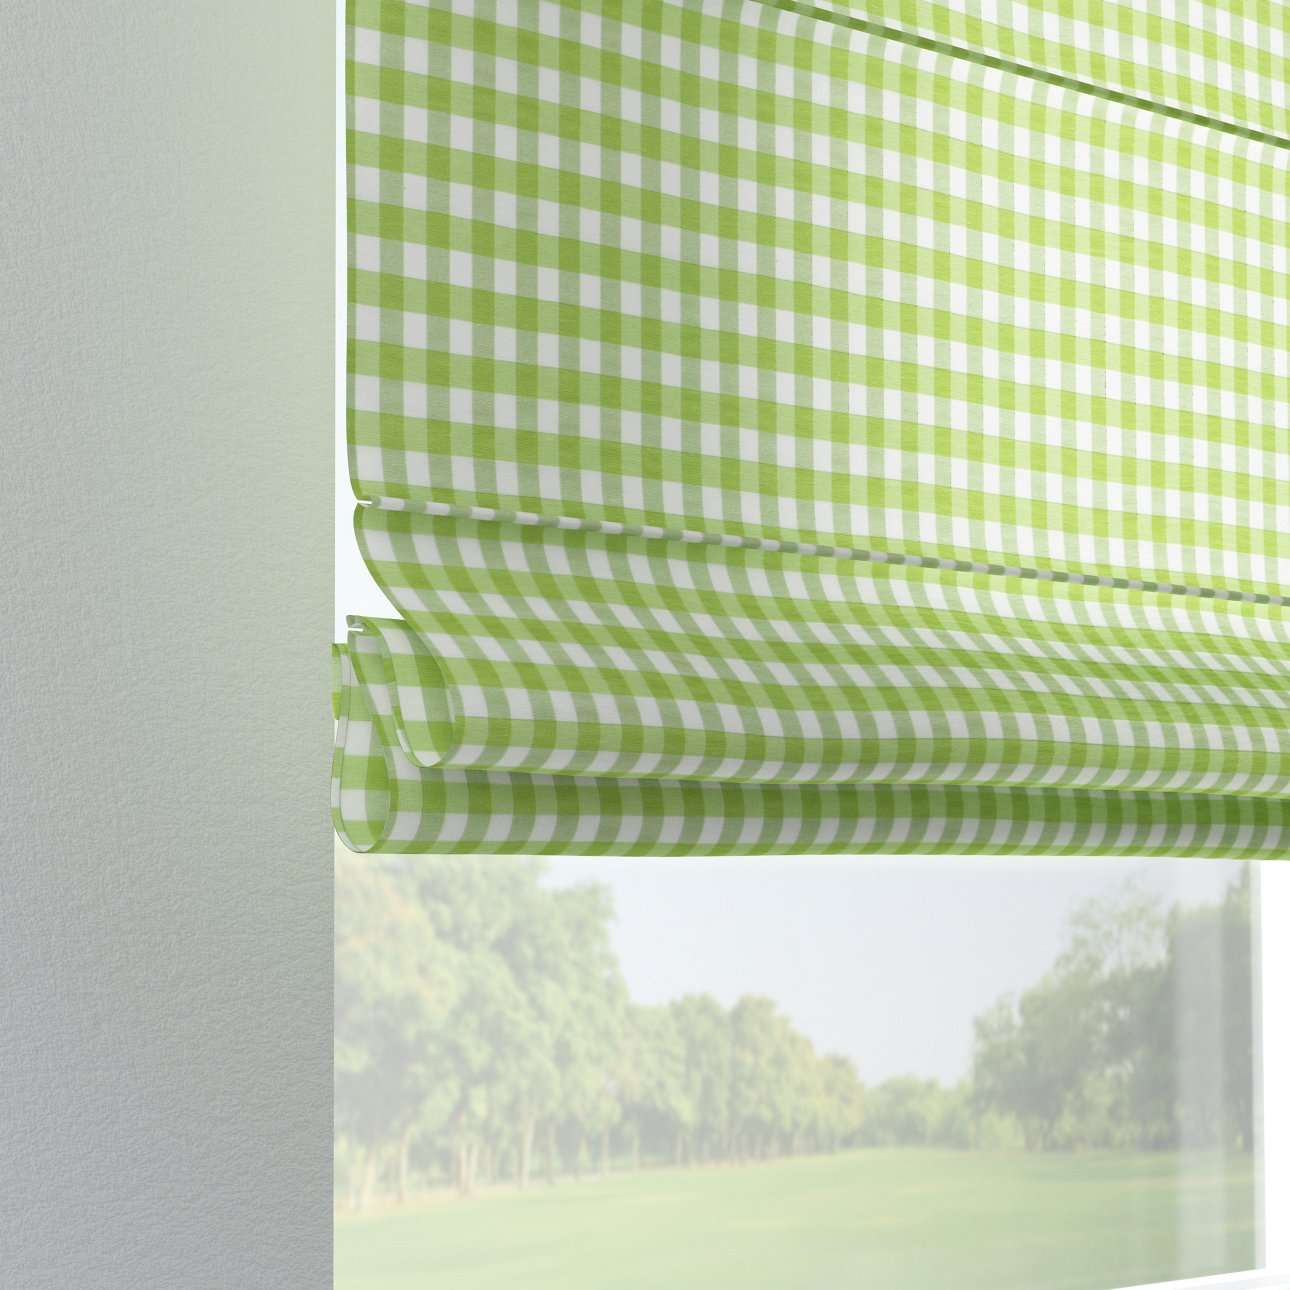 Verona tab top roman blind 80 x 170 cm (31.5 x 67 inch) in collection Quadro, fabric: 136-34